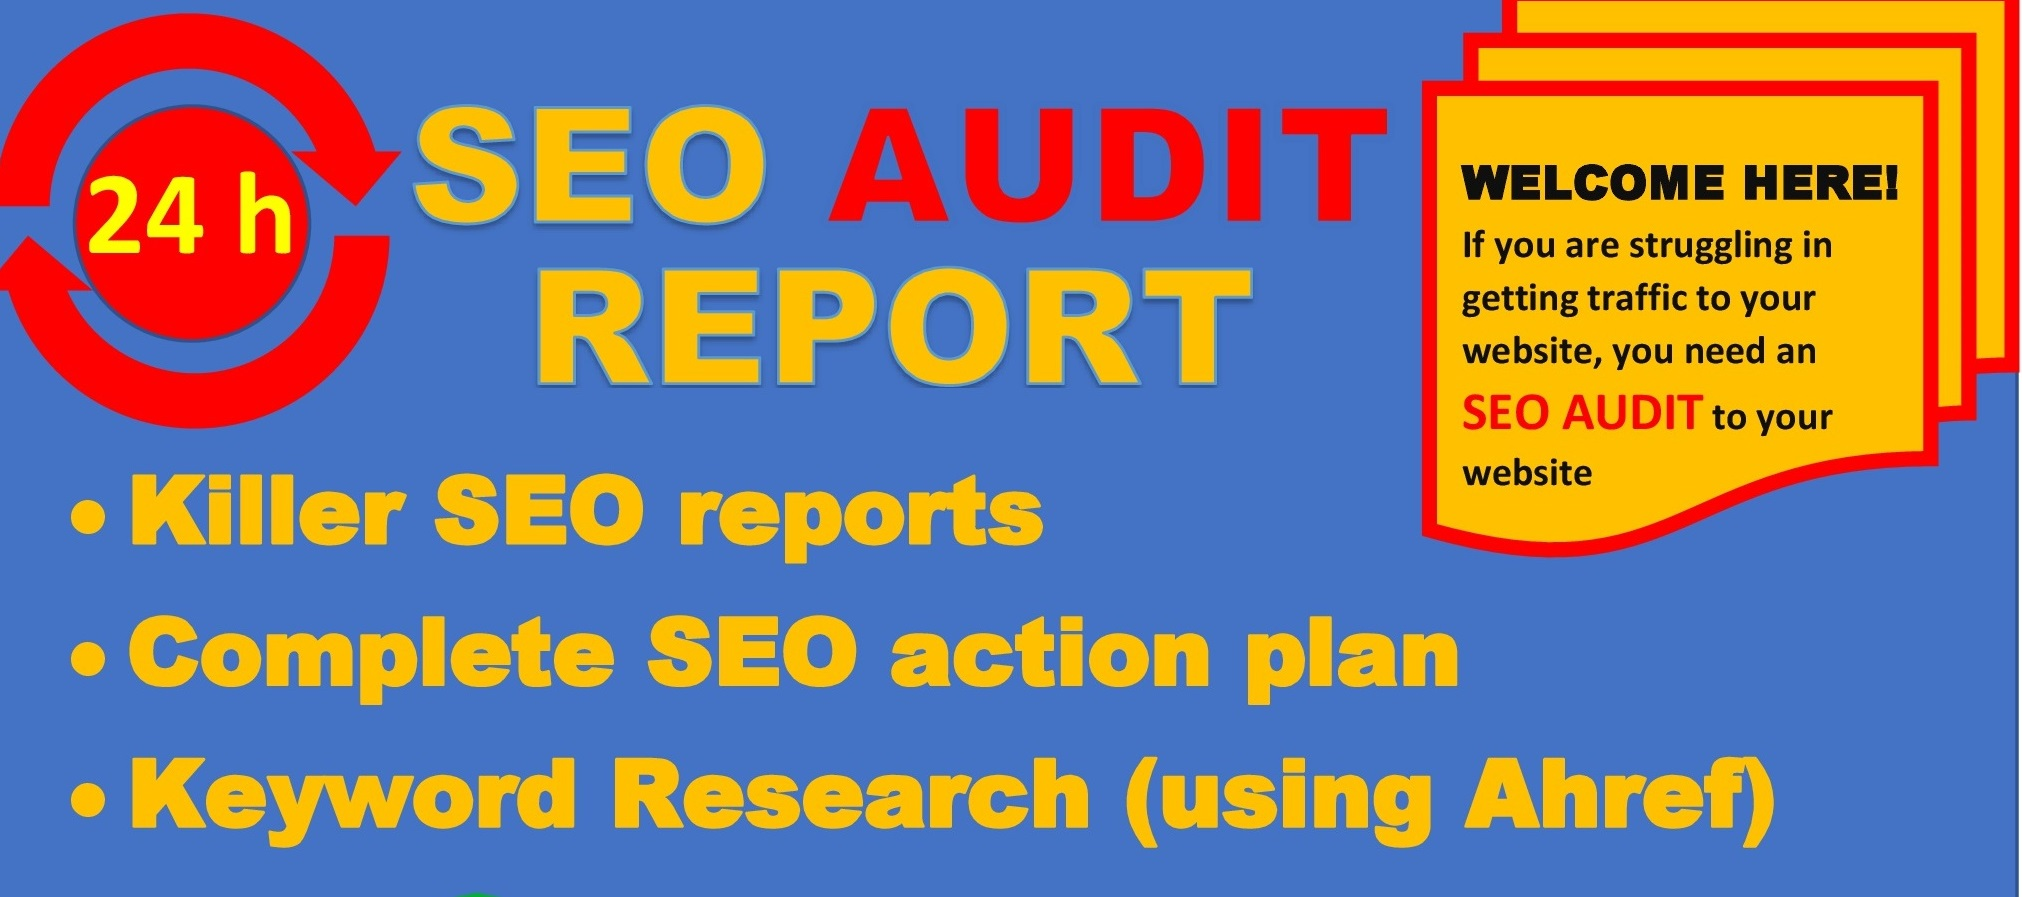 provide detailed SEO report,competitor audit and action plan